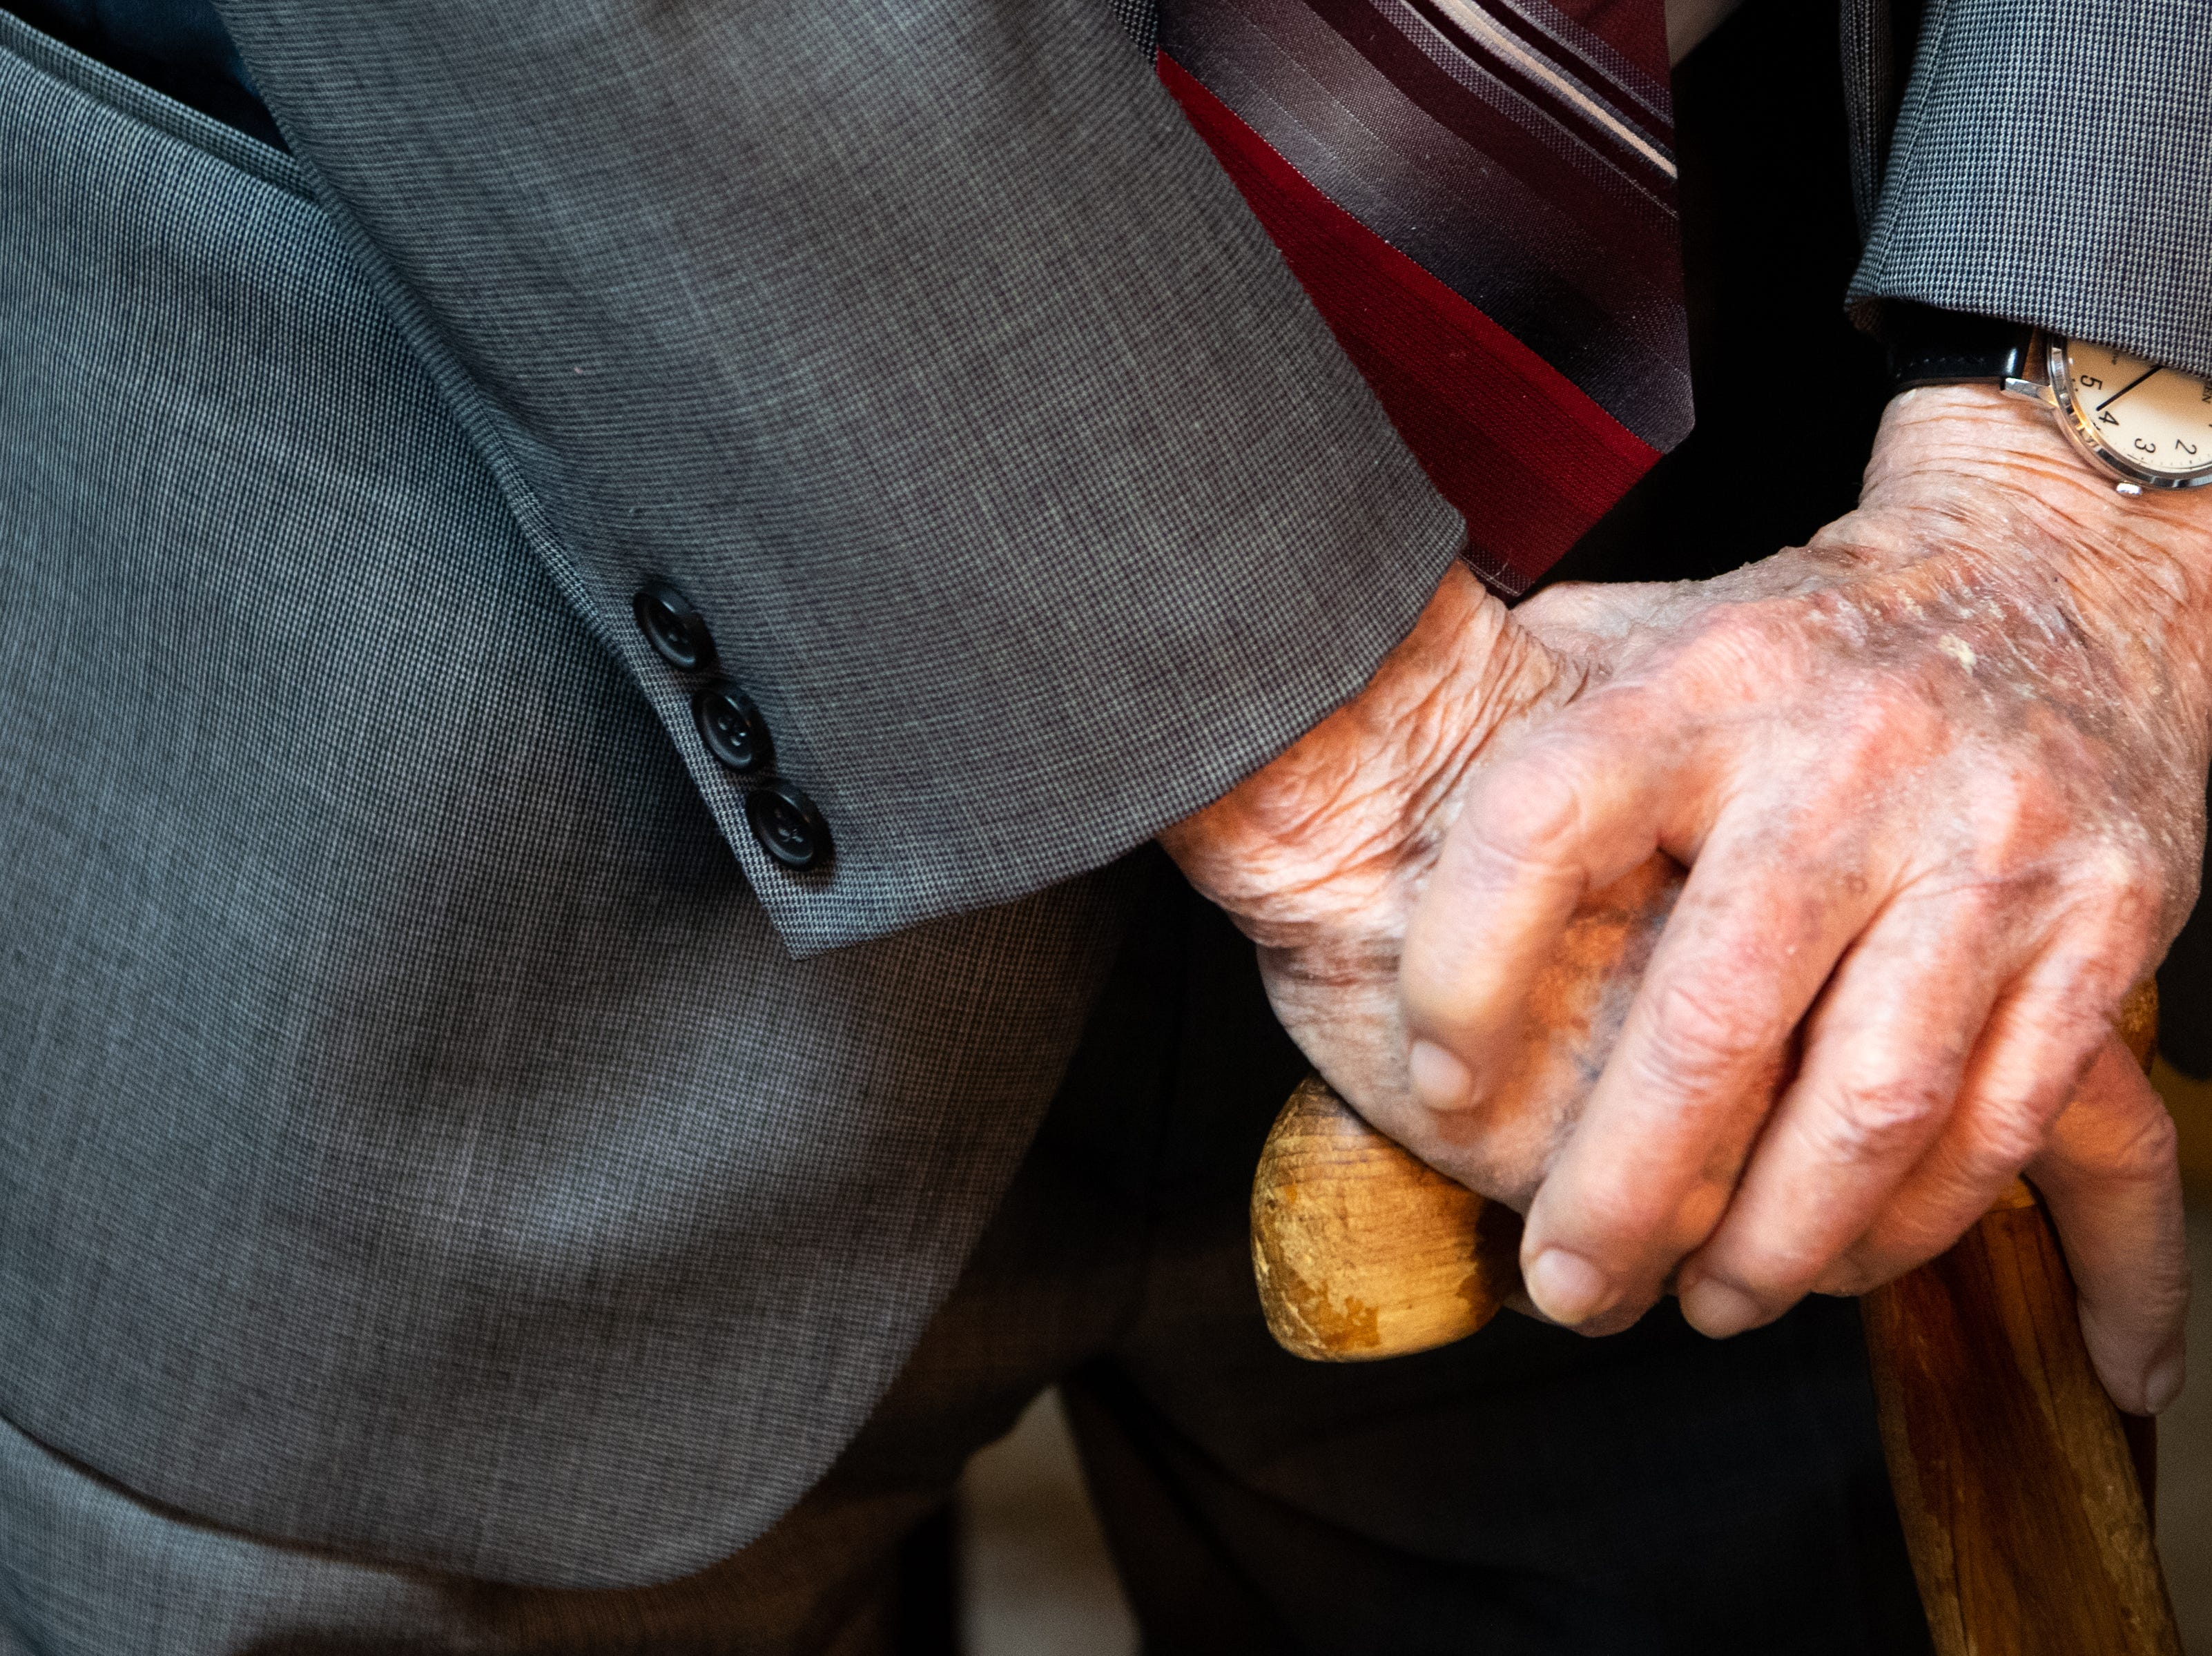 James L. Bass, 97, rests his hands on his cane at Bass & Bass Attorneys At Law Friday, March 29, 2019, in Carthage, Tenn. Bass still works five days a week at the family law firm after starting there 70 years ago. Bass served in World War II, went back to school to pursue a law degree and graduated Vanderbilt University School of Law in 1949.